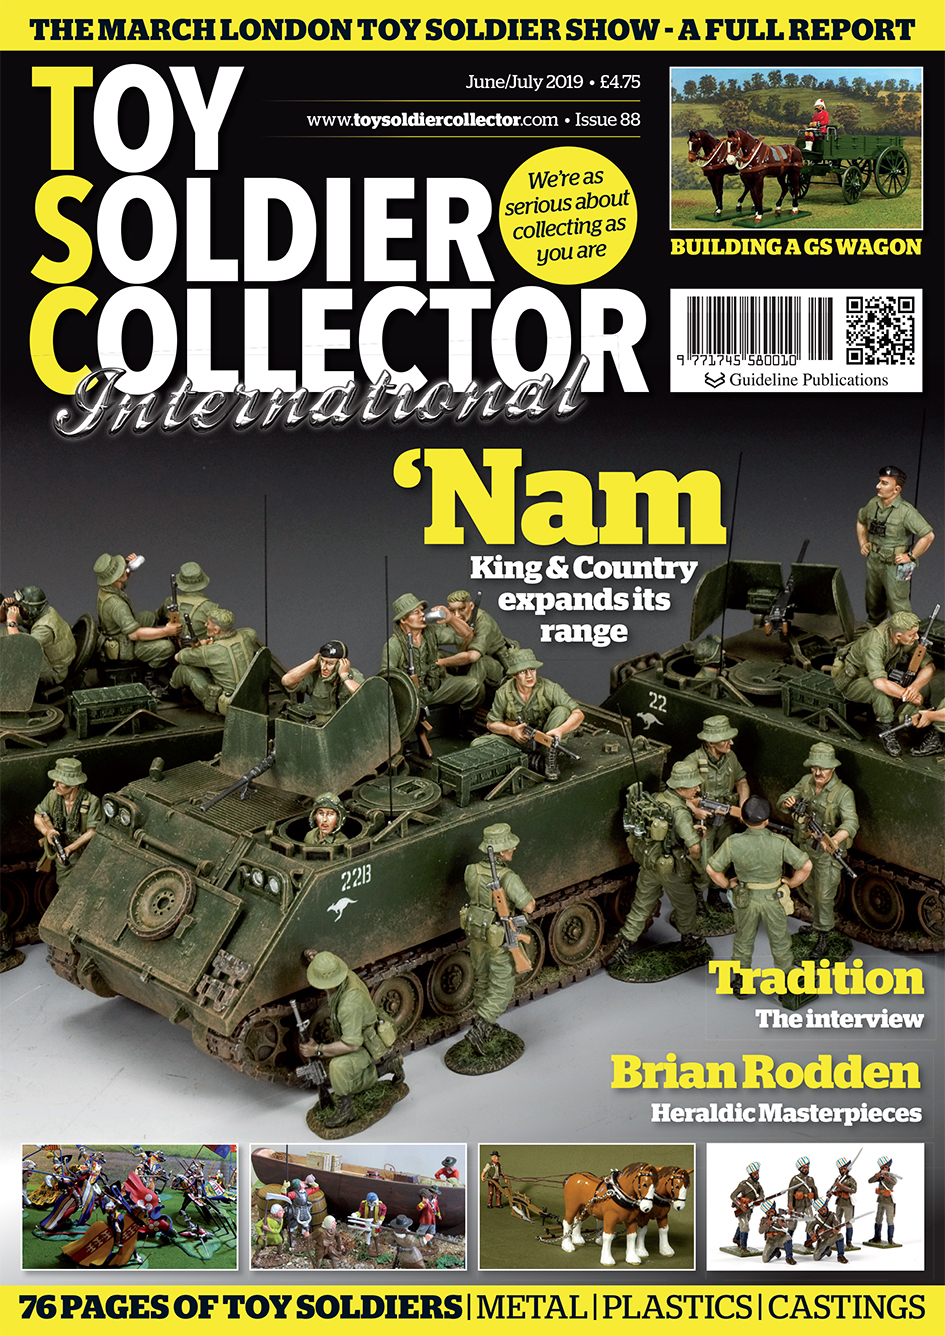 Guideline Publications Toy Soldier Collector #88 June/July  #88